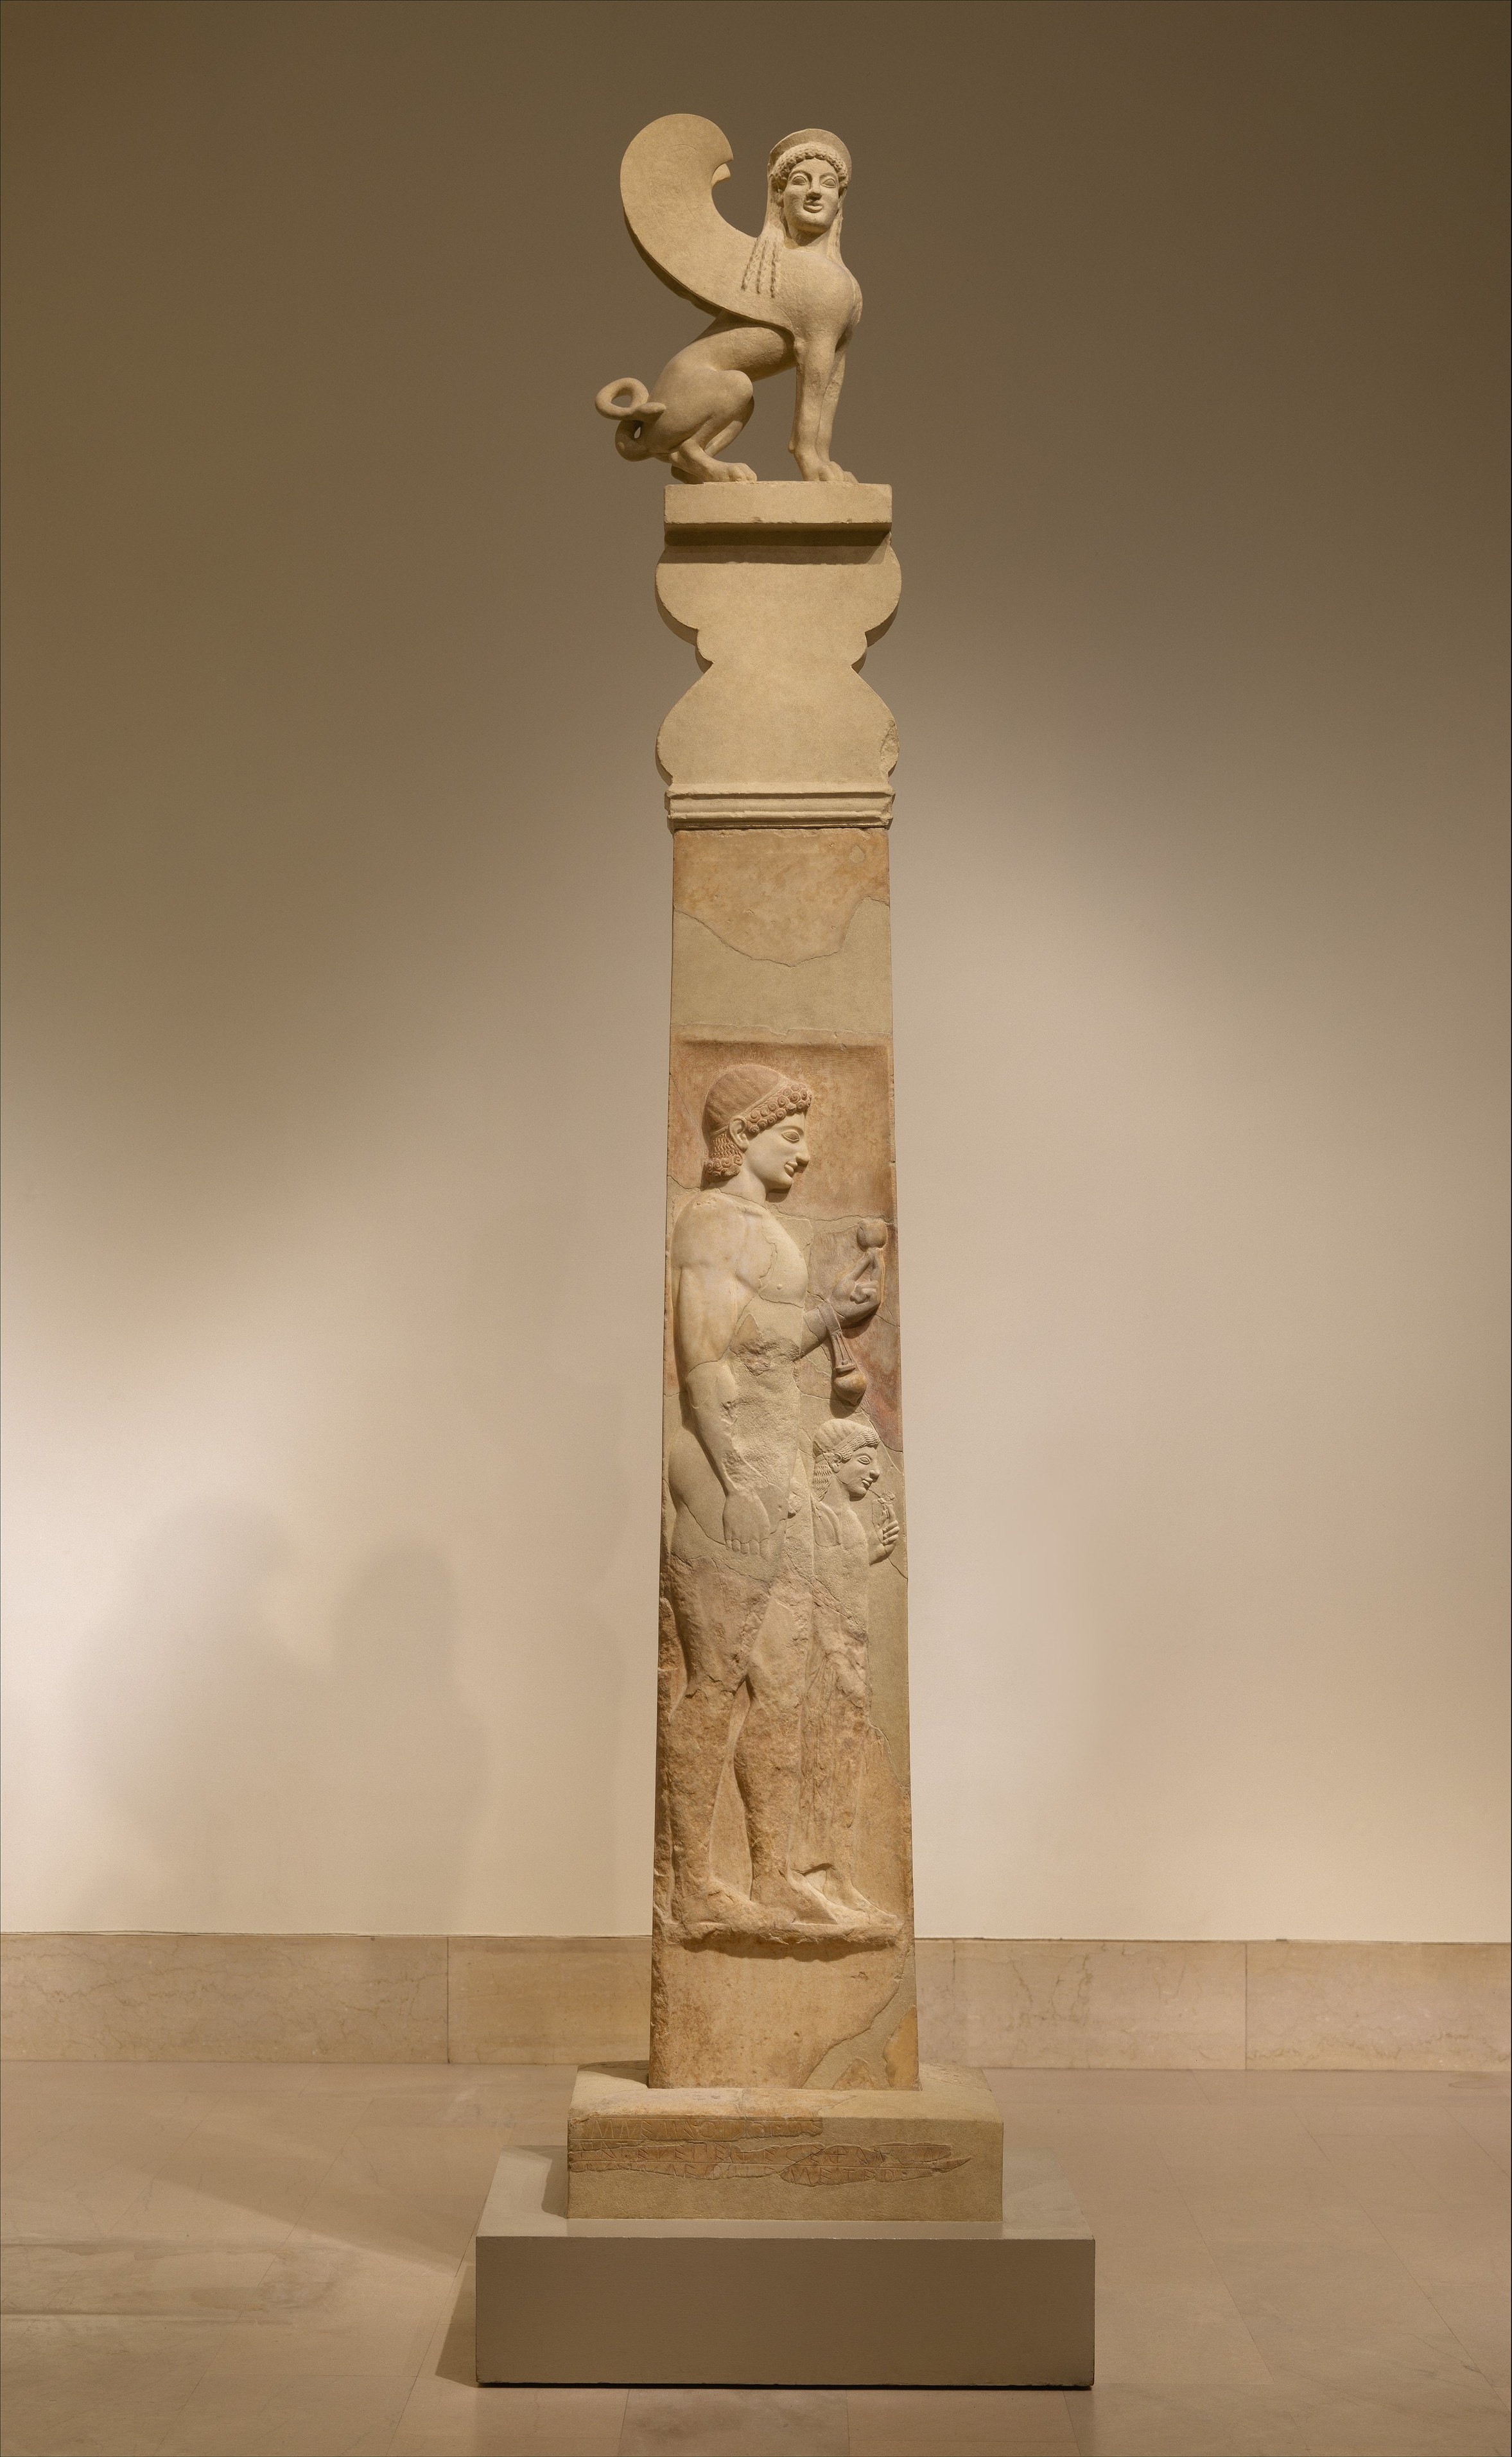 Marble stele of a youth and little girl with capital and finial in the form of a Sphinx